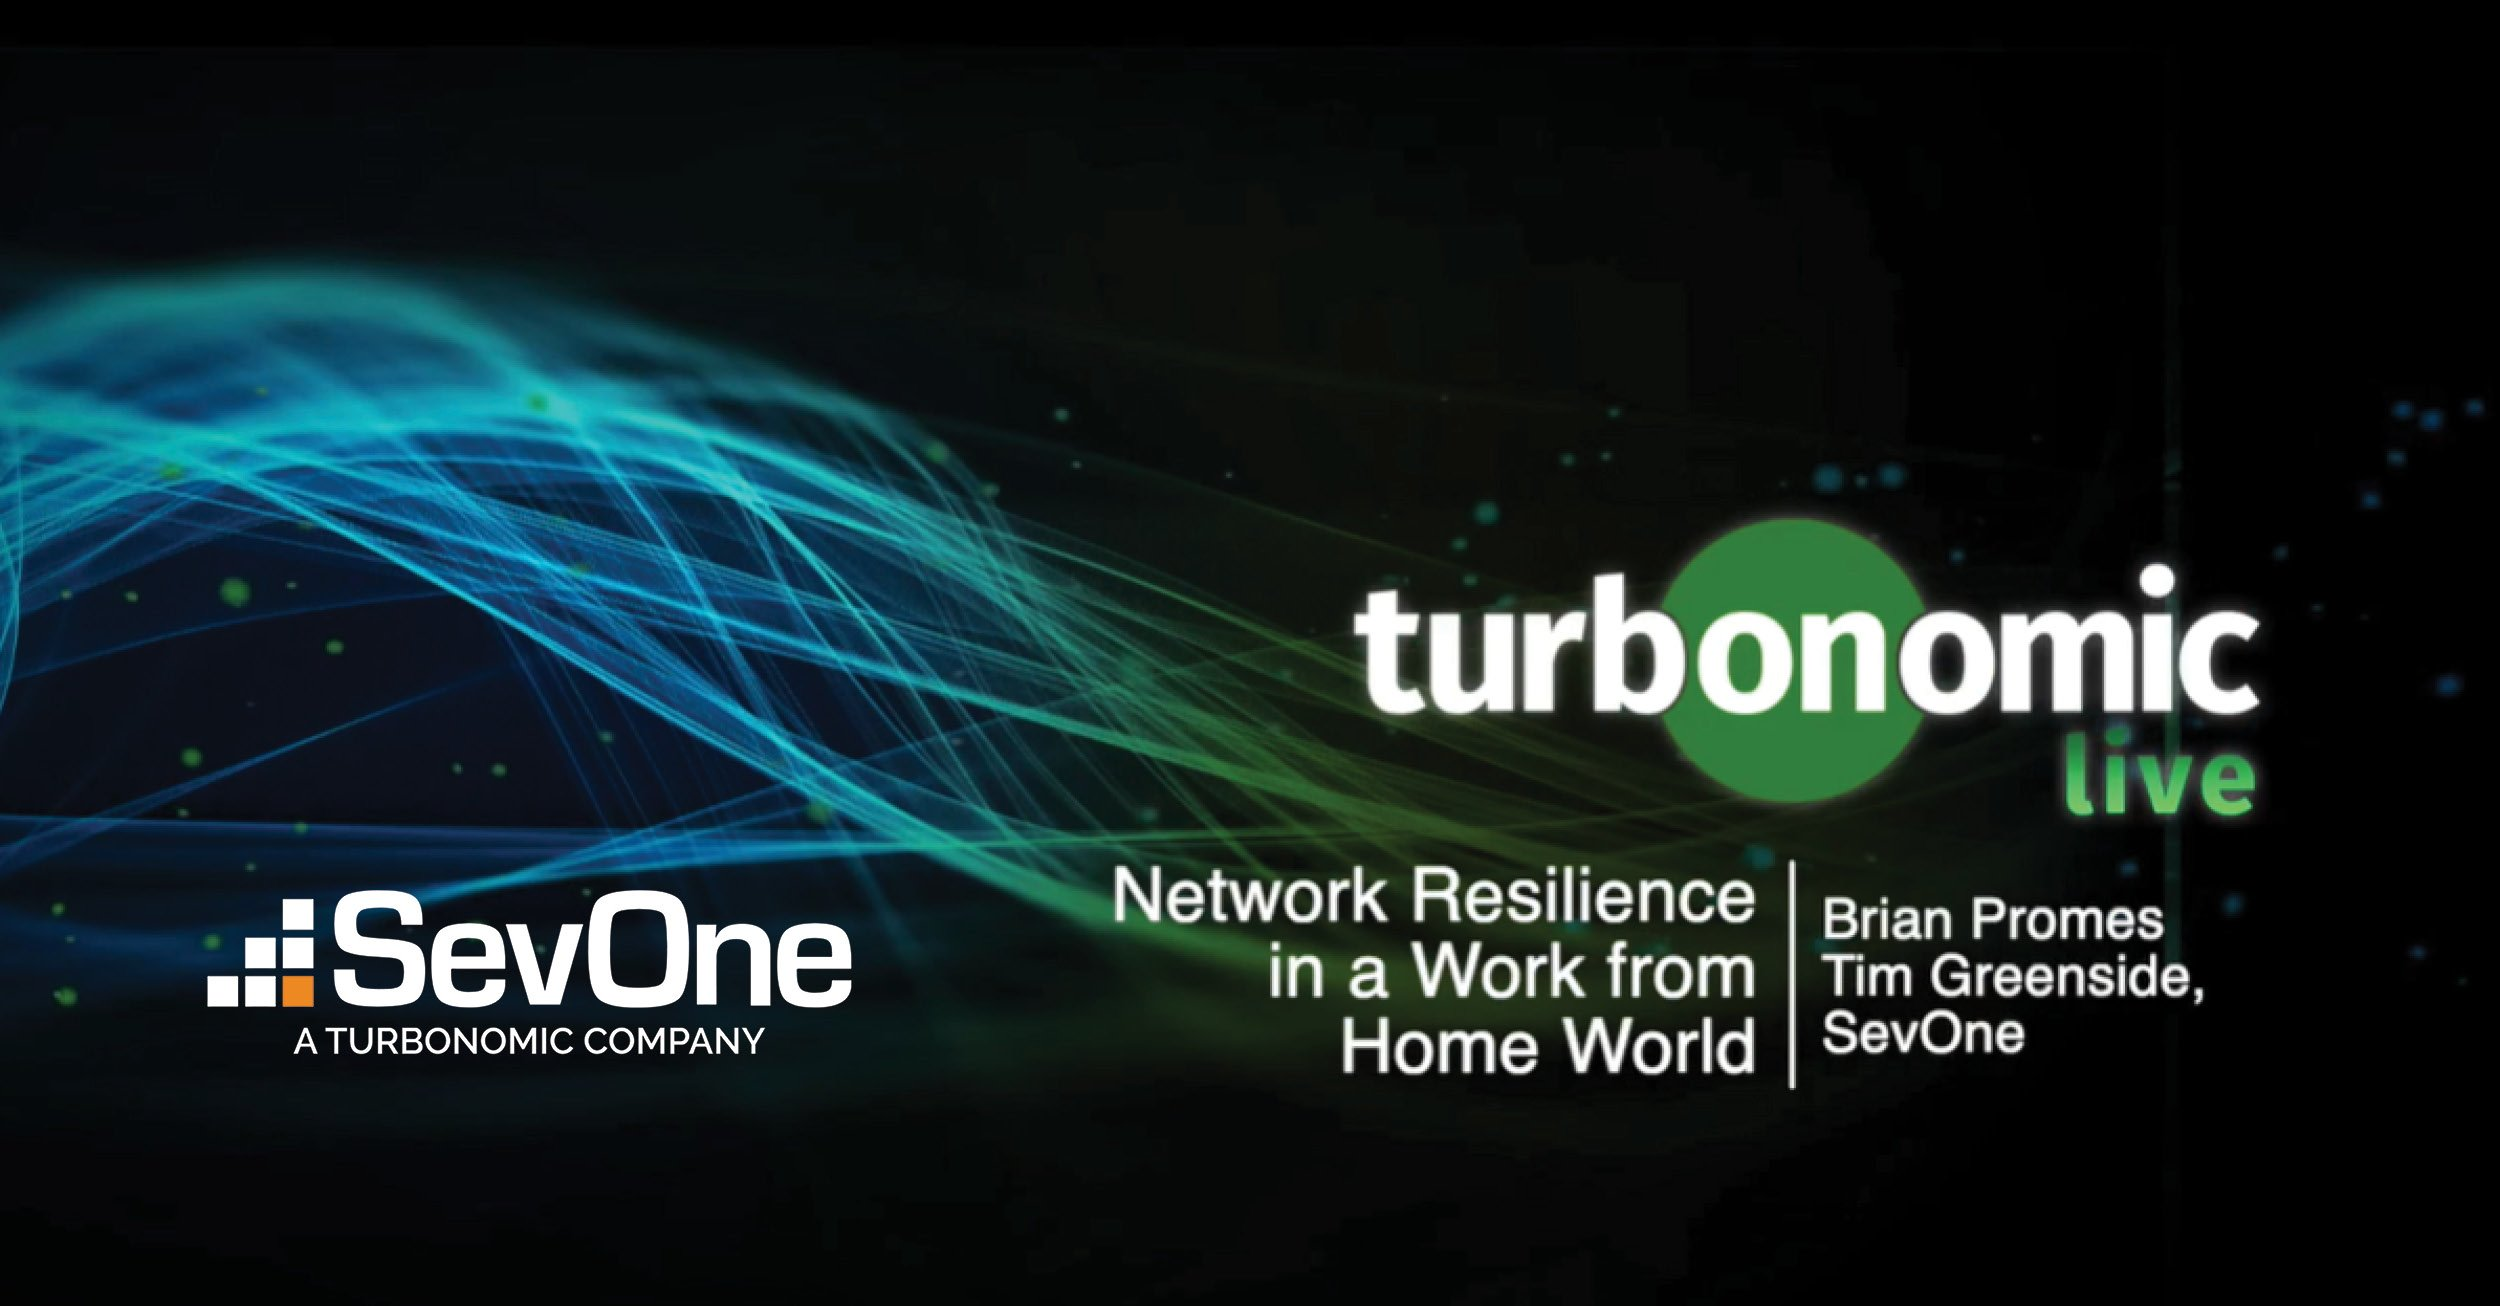 Network Resilience in a Work From Home World